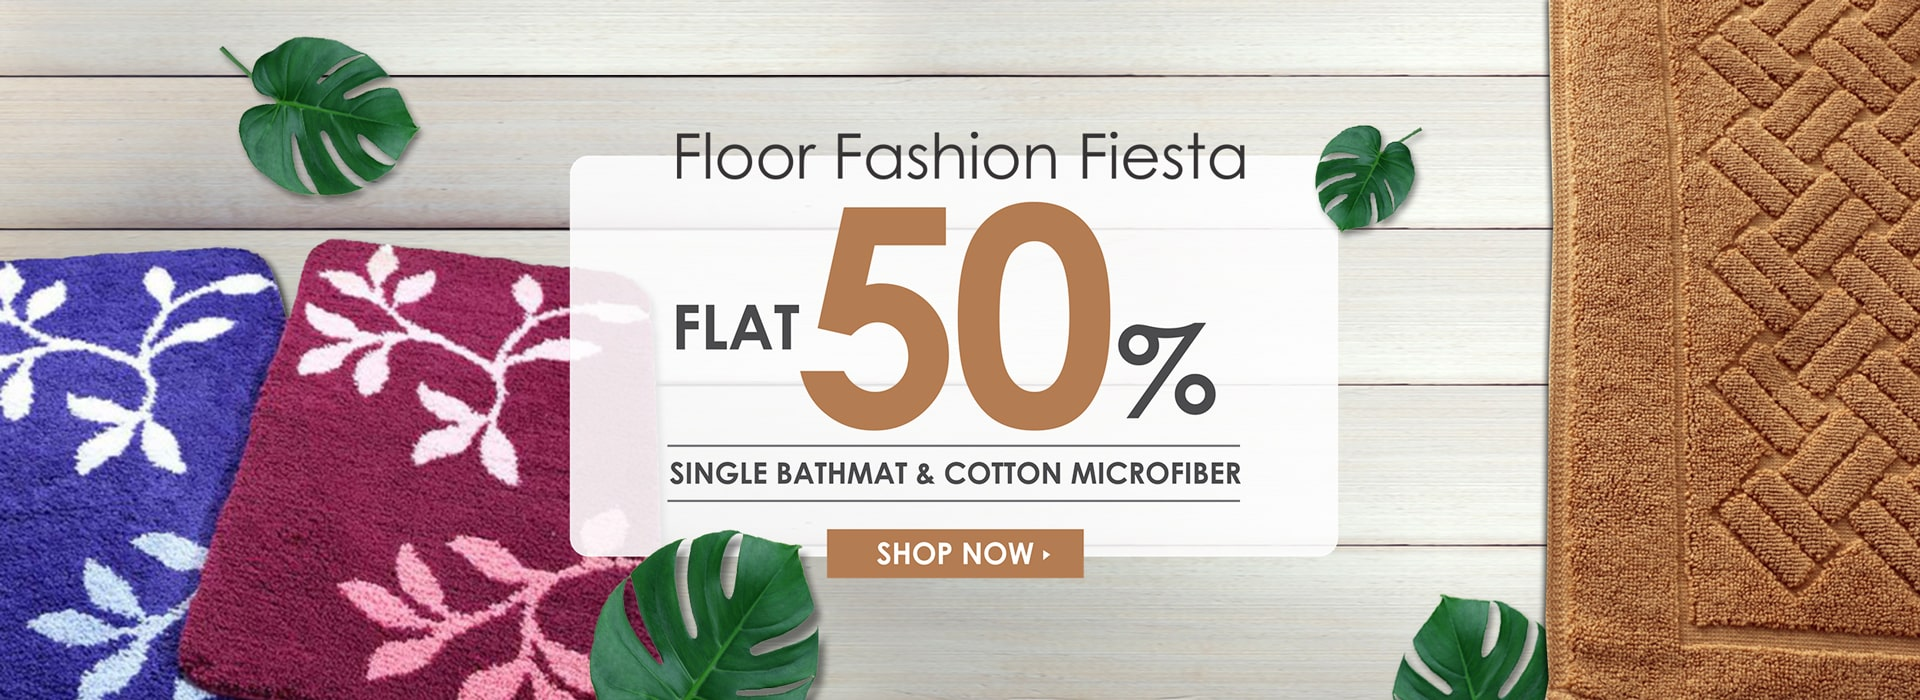 Floor Fashion Fiesta